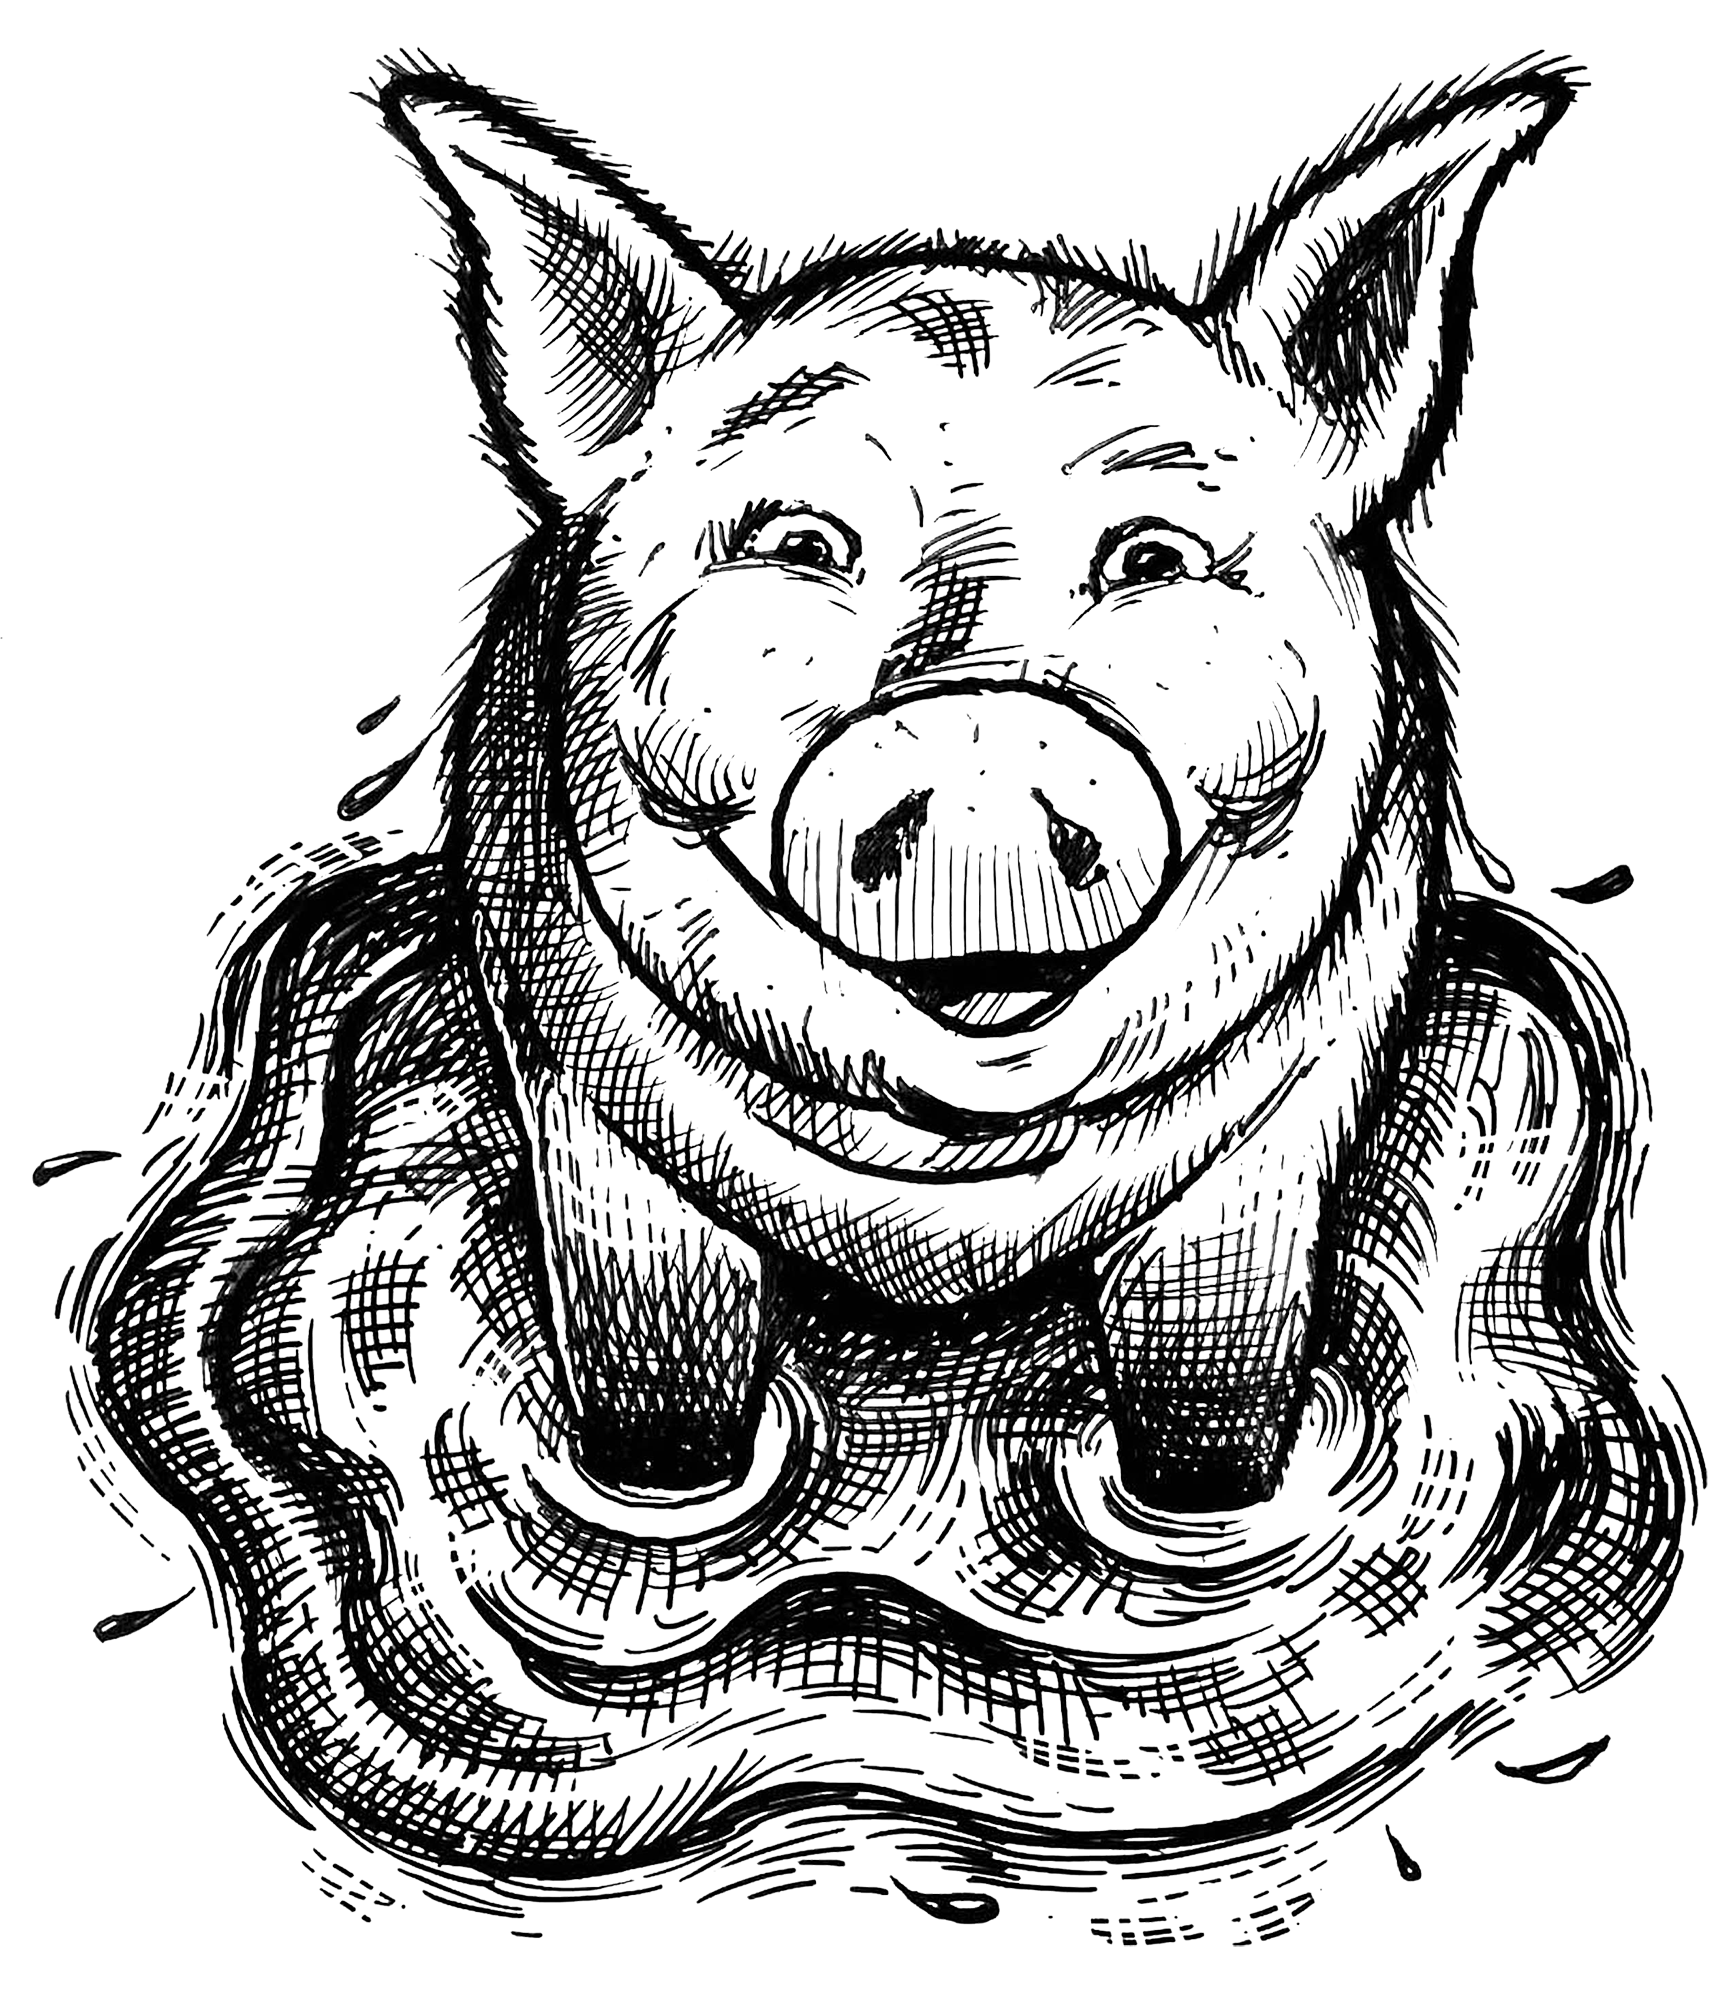 saxbys-pig-in-puddle.png